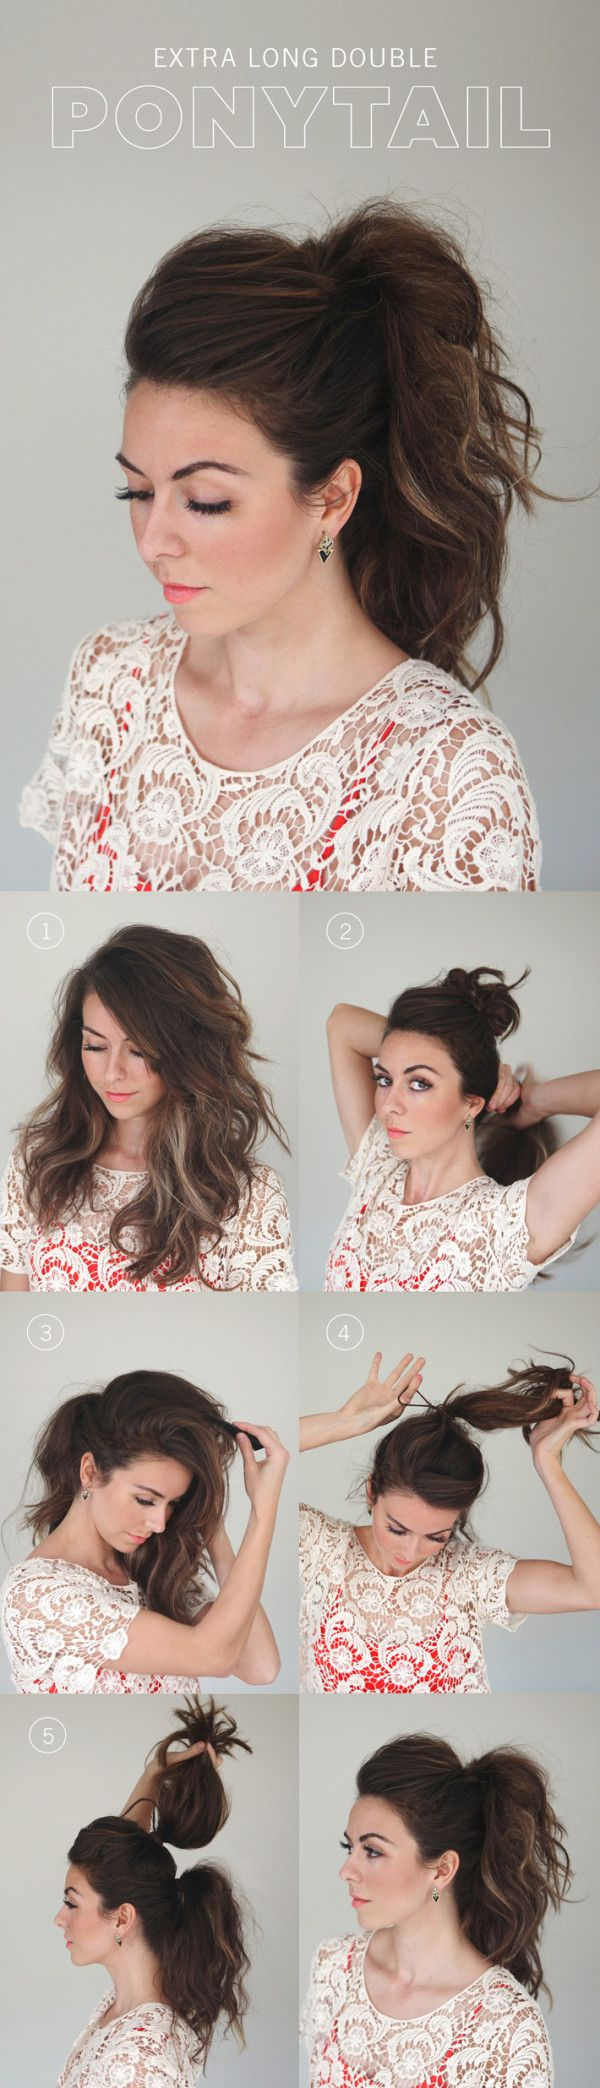 Groovy 1000 Ideas About Easy Morning Hairstyles On Pinterest Vintage Hairstyles For Women Draintrainus